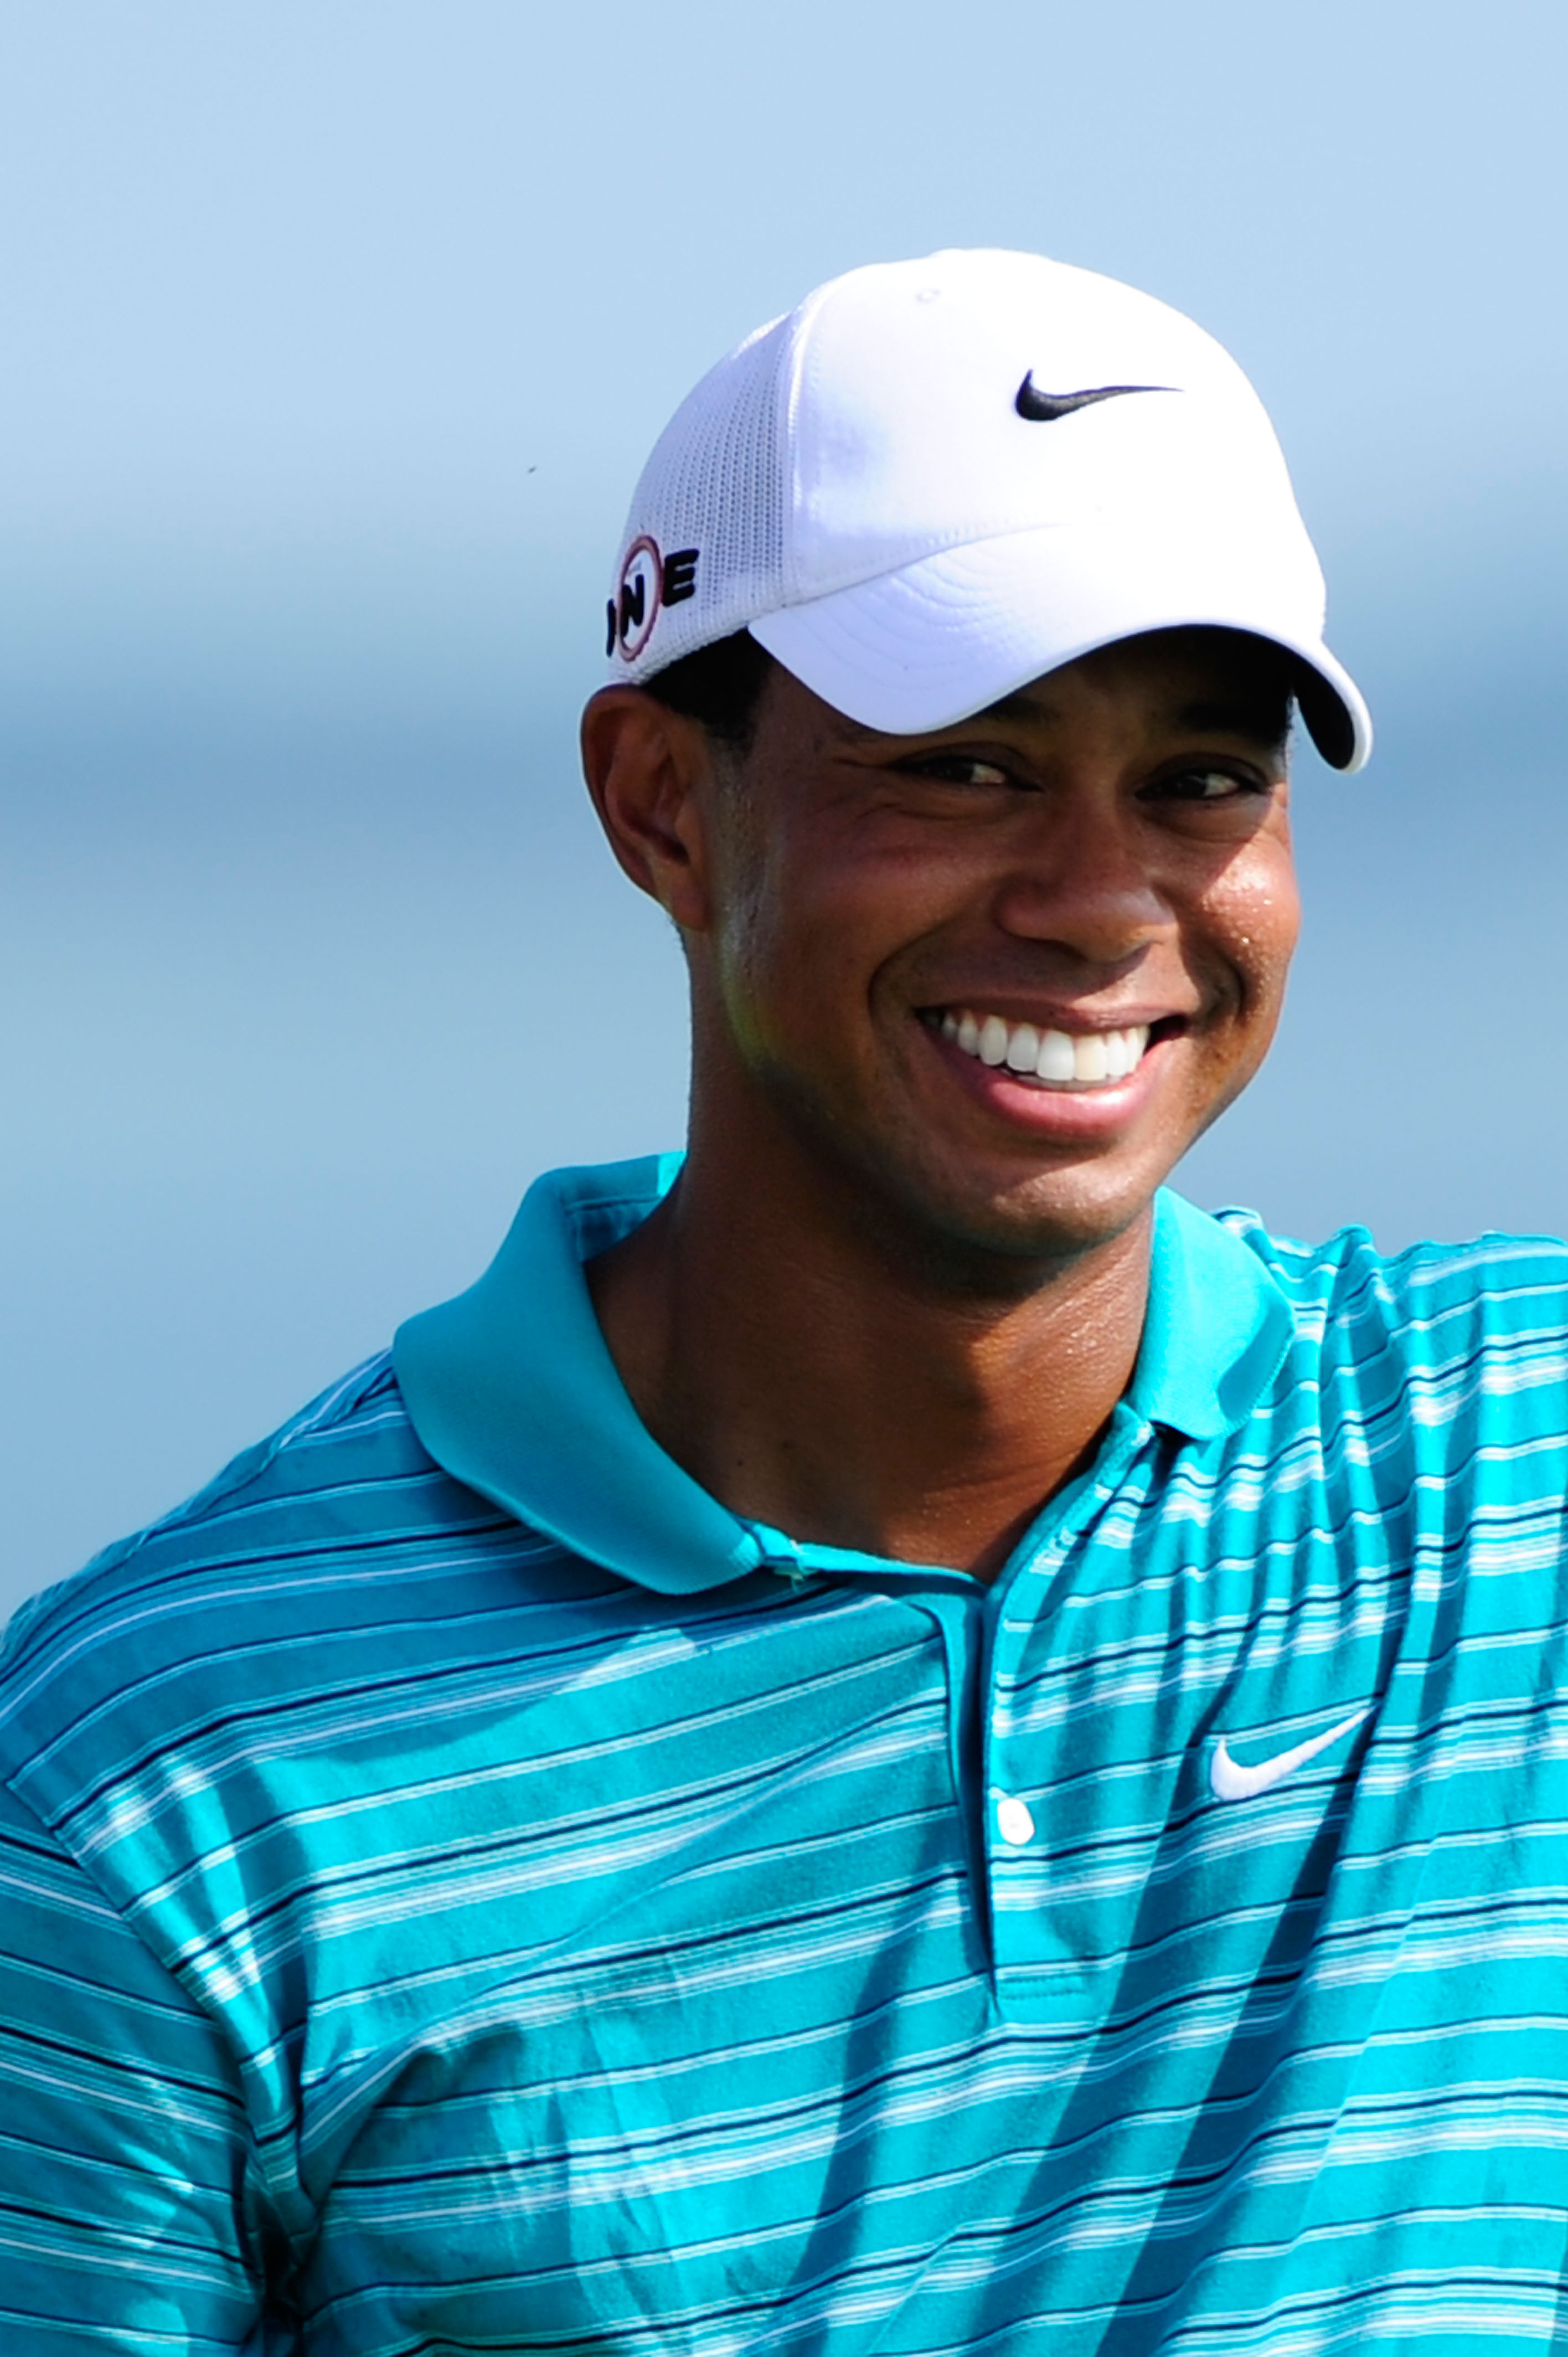 KOHLER, WI - AUGUST 14:  Tiger Woods smiles on the 15th tee during the continuation of the second round of the 92nd PGA Championship on the Straits Course at Whistling Straits on August 14, 2010 in Kohler, Wisconsin.  (Photo by Stuart Franklin/Getty Image